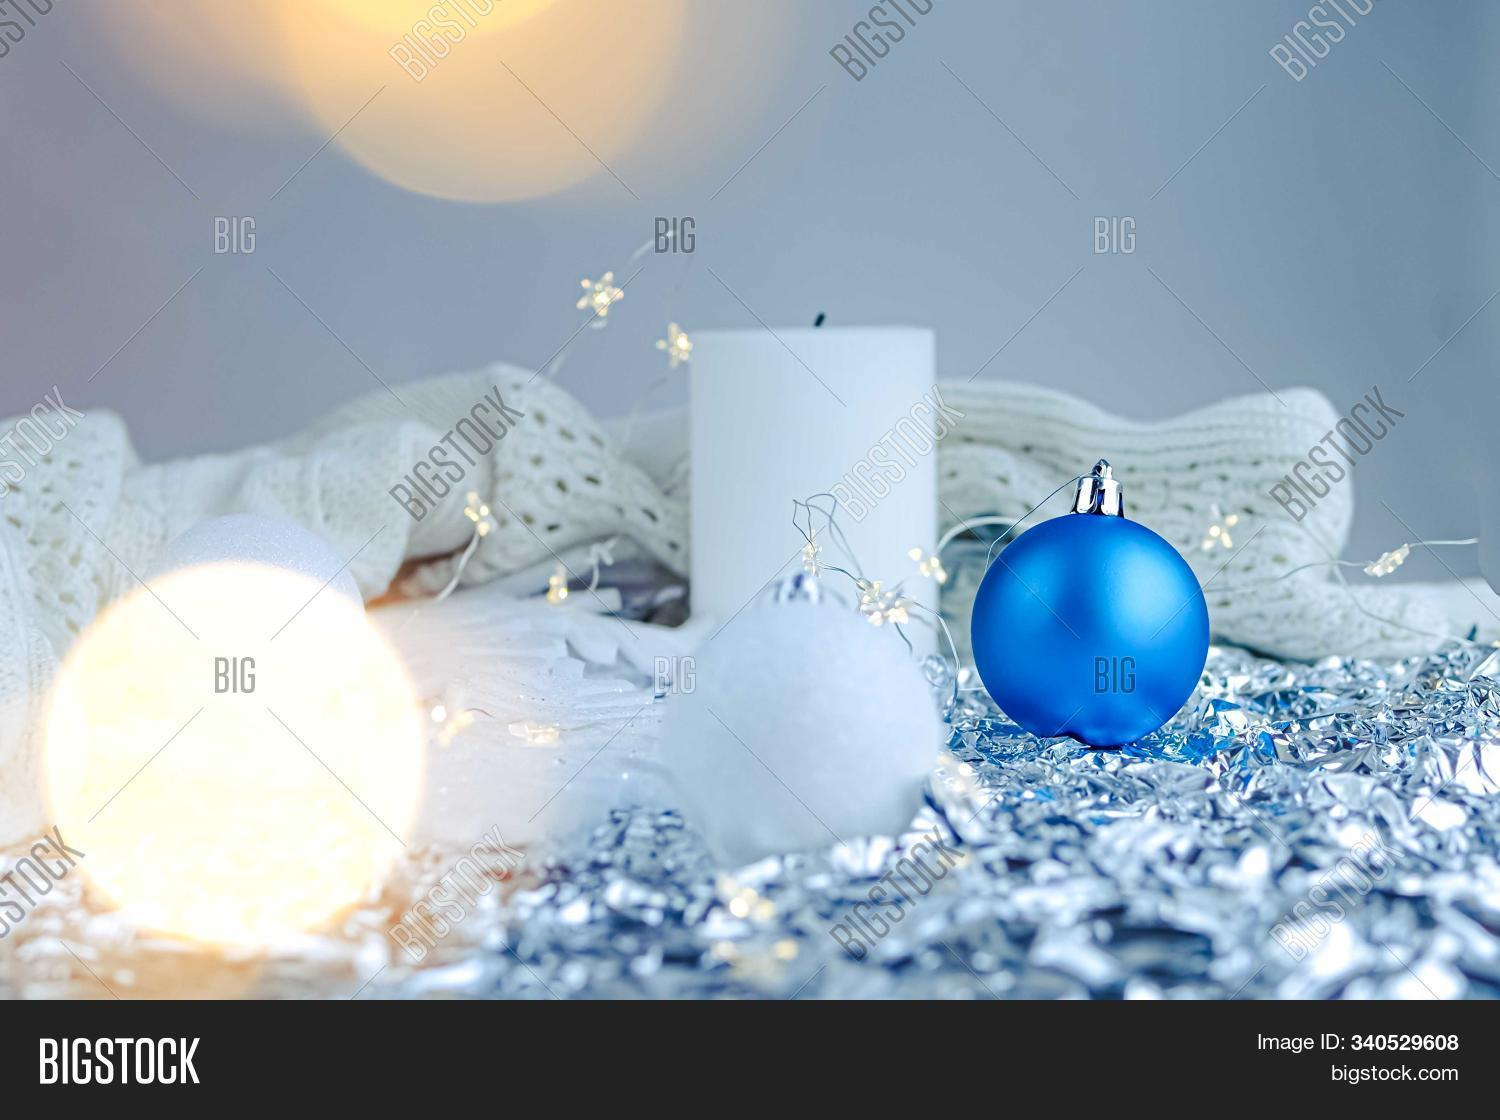 White Blue Holiday Image Photo Free Trial Bigstock